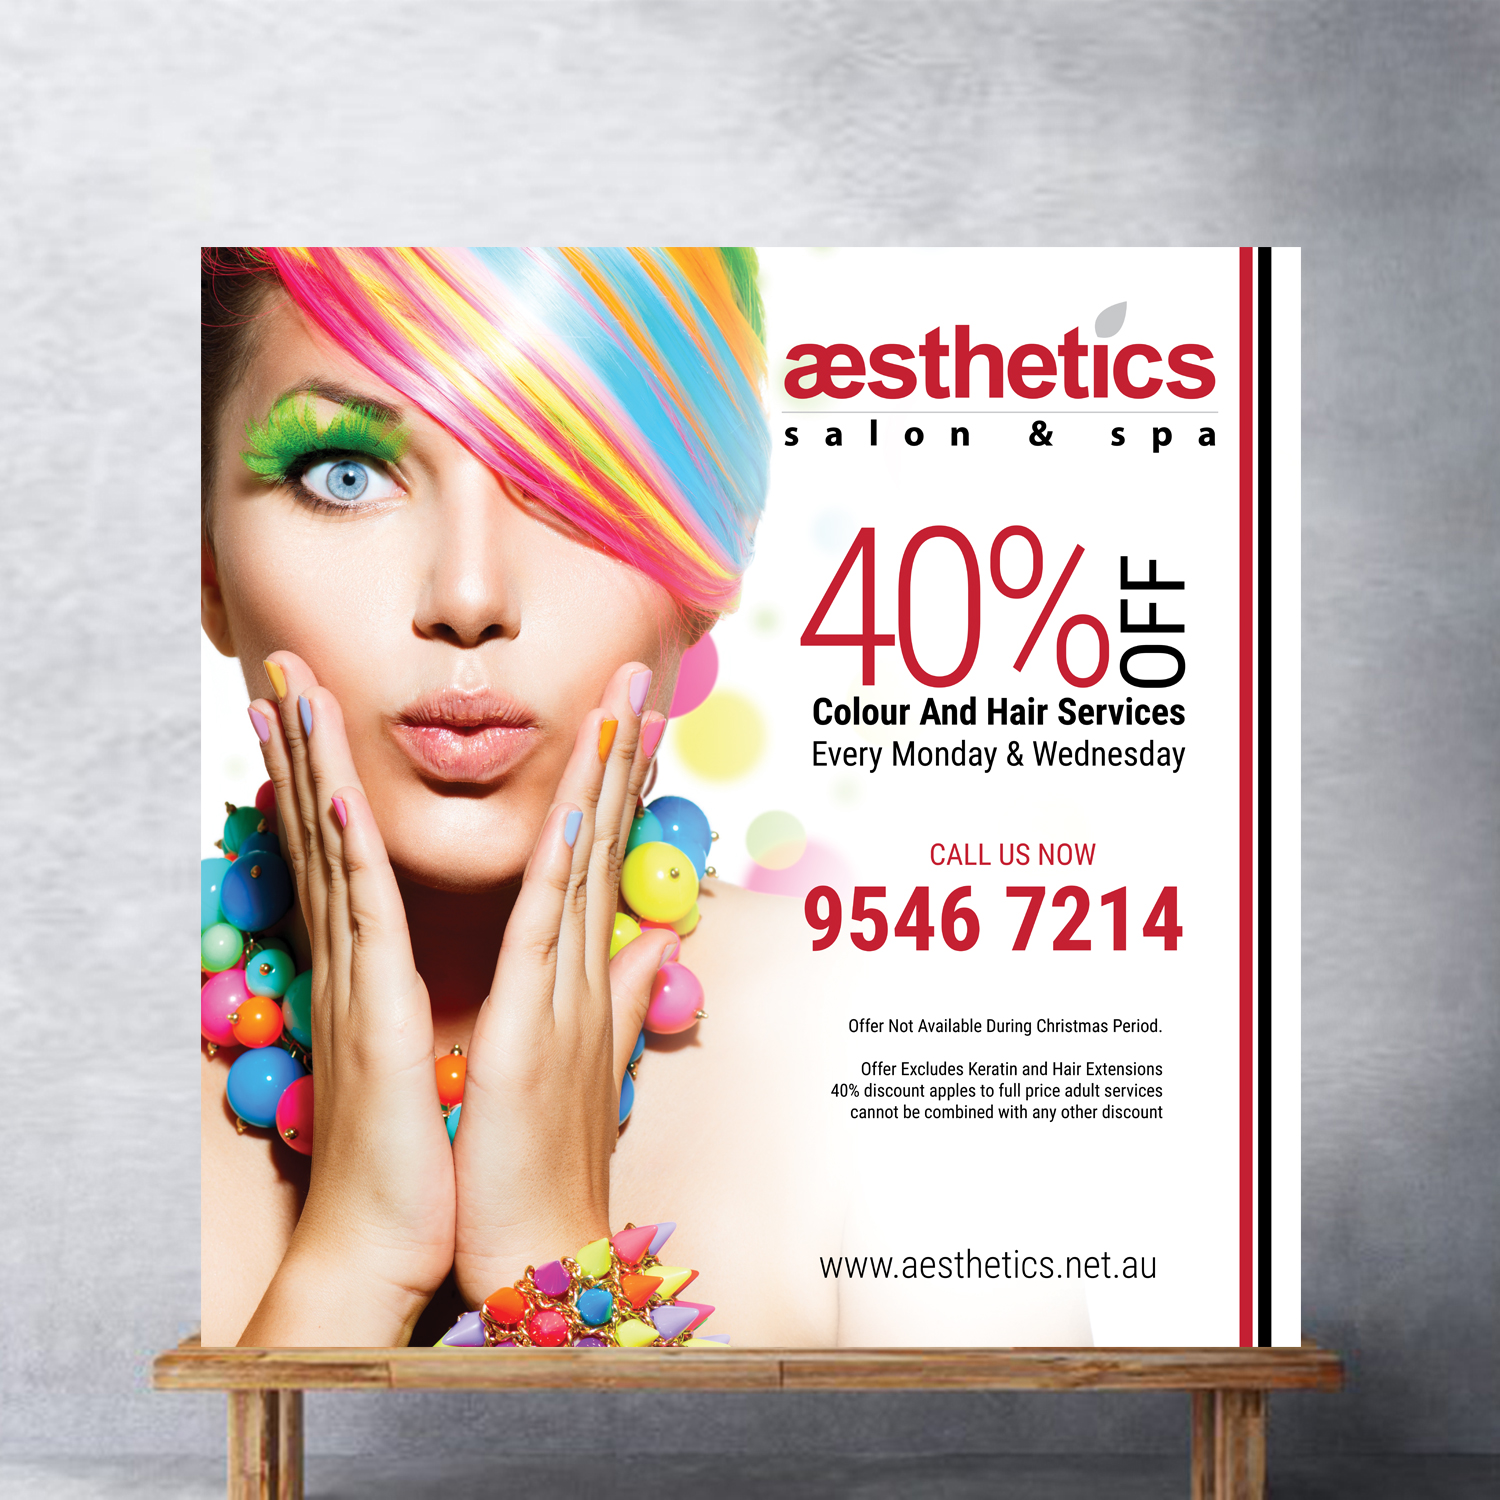 Serious Modern Hair And Beauty Poster Design For Aesthetics Salon Spa By Uk Design 16346634